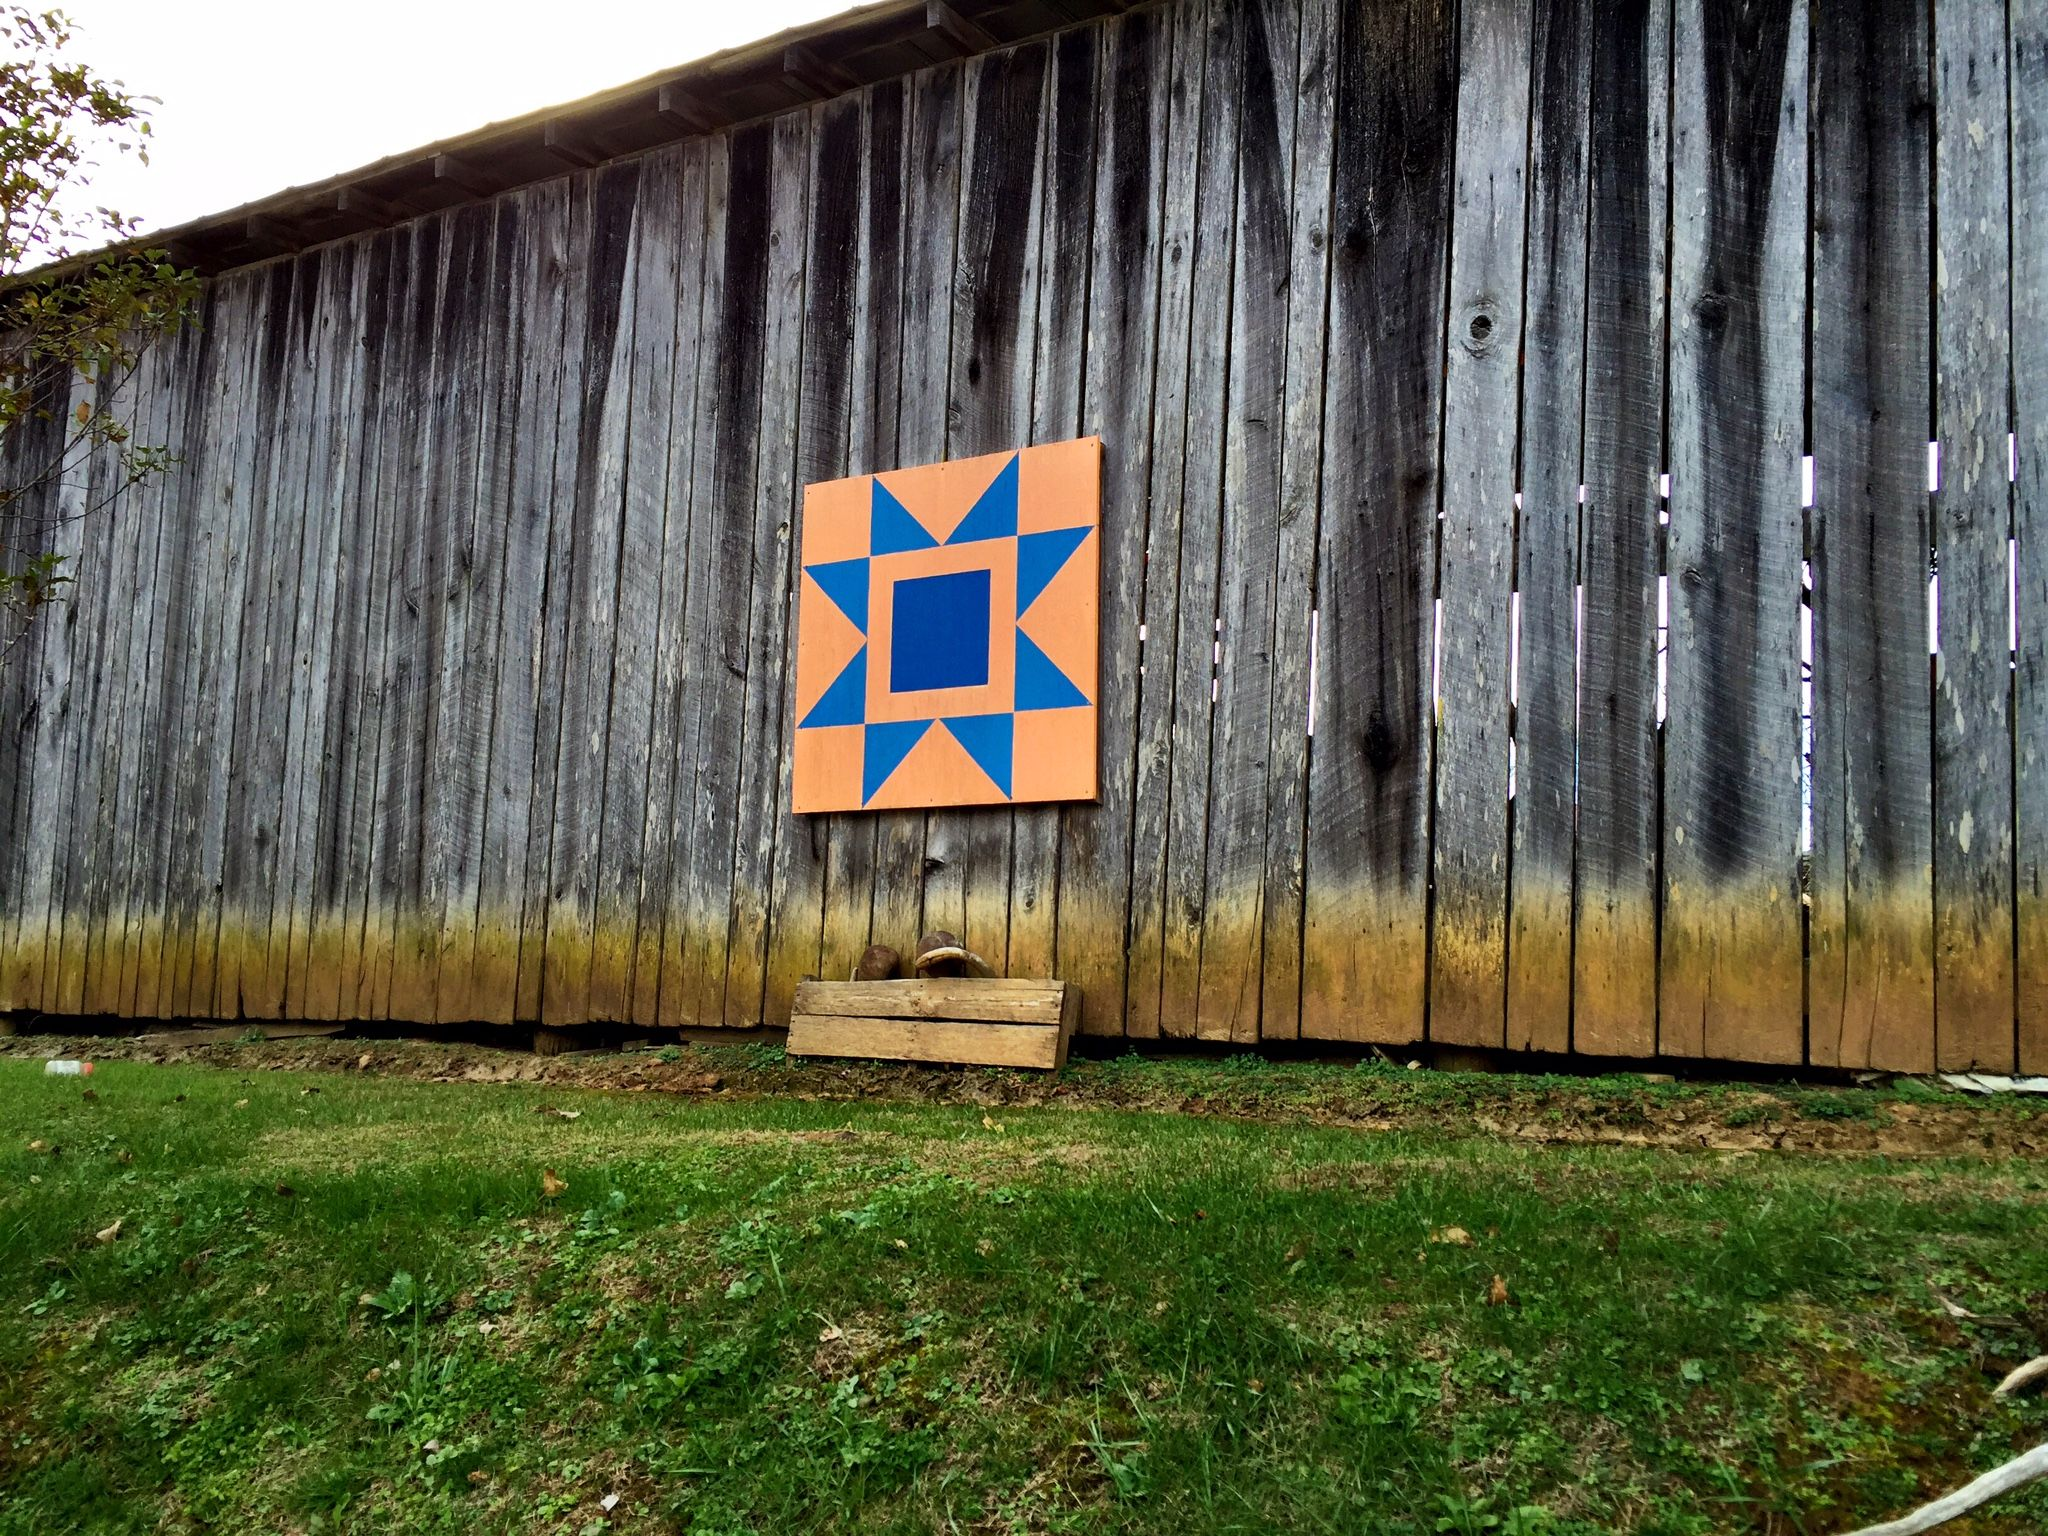 Bethlehem Star Byrd Quilt Barn Sinks Rd Sneedville Tn Hancock Co Barn Quilts Appalachia Barn